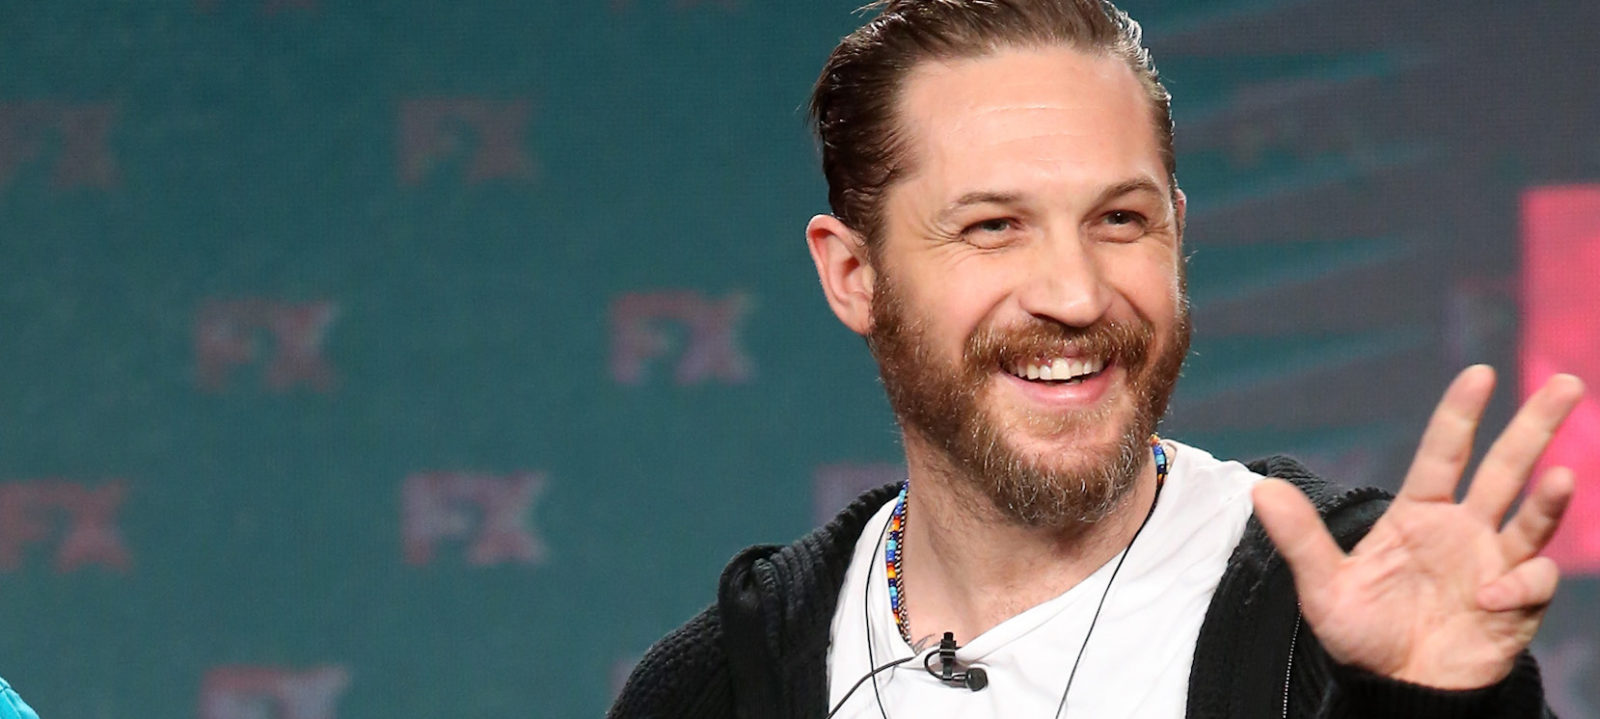 Creator/executive producer/actor Tom Hardy of the television show 'Taboo' speaks onstage during the FX portion of the 2017 Winter Television Critics Association Press Tour at Langham Hotel on January 12, 2017 in Pasadena, California